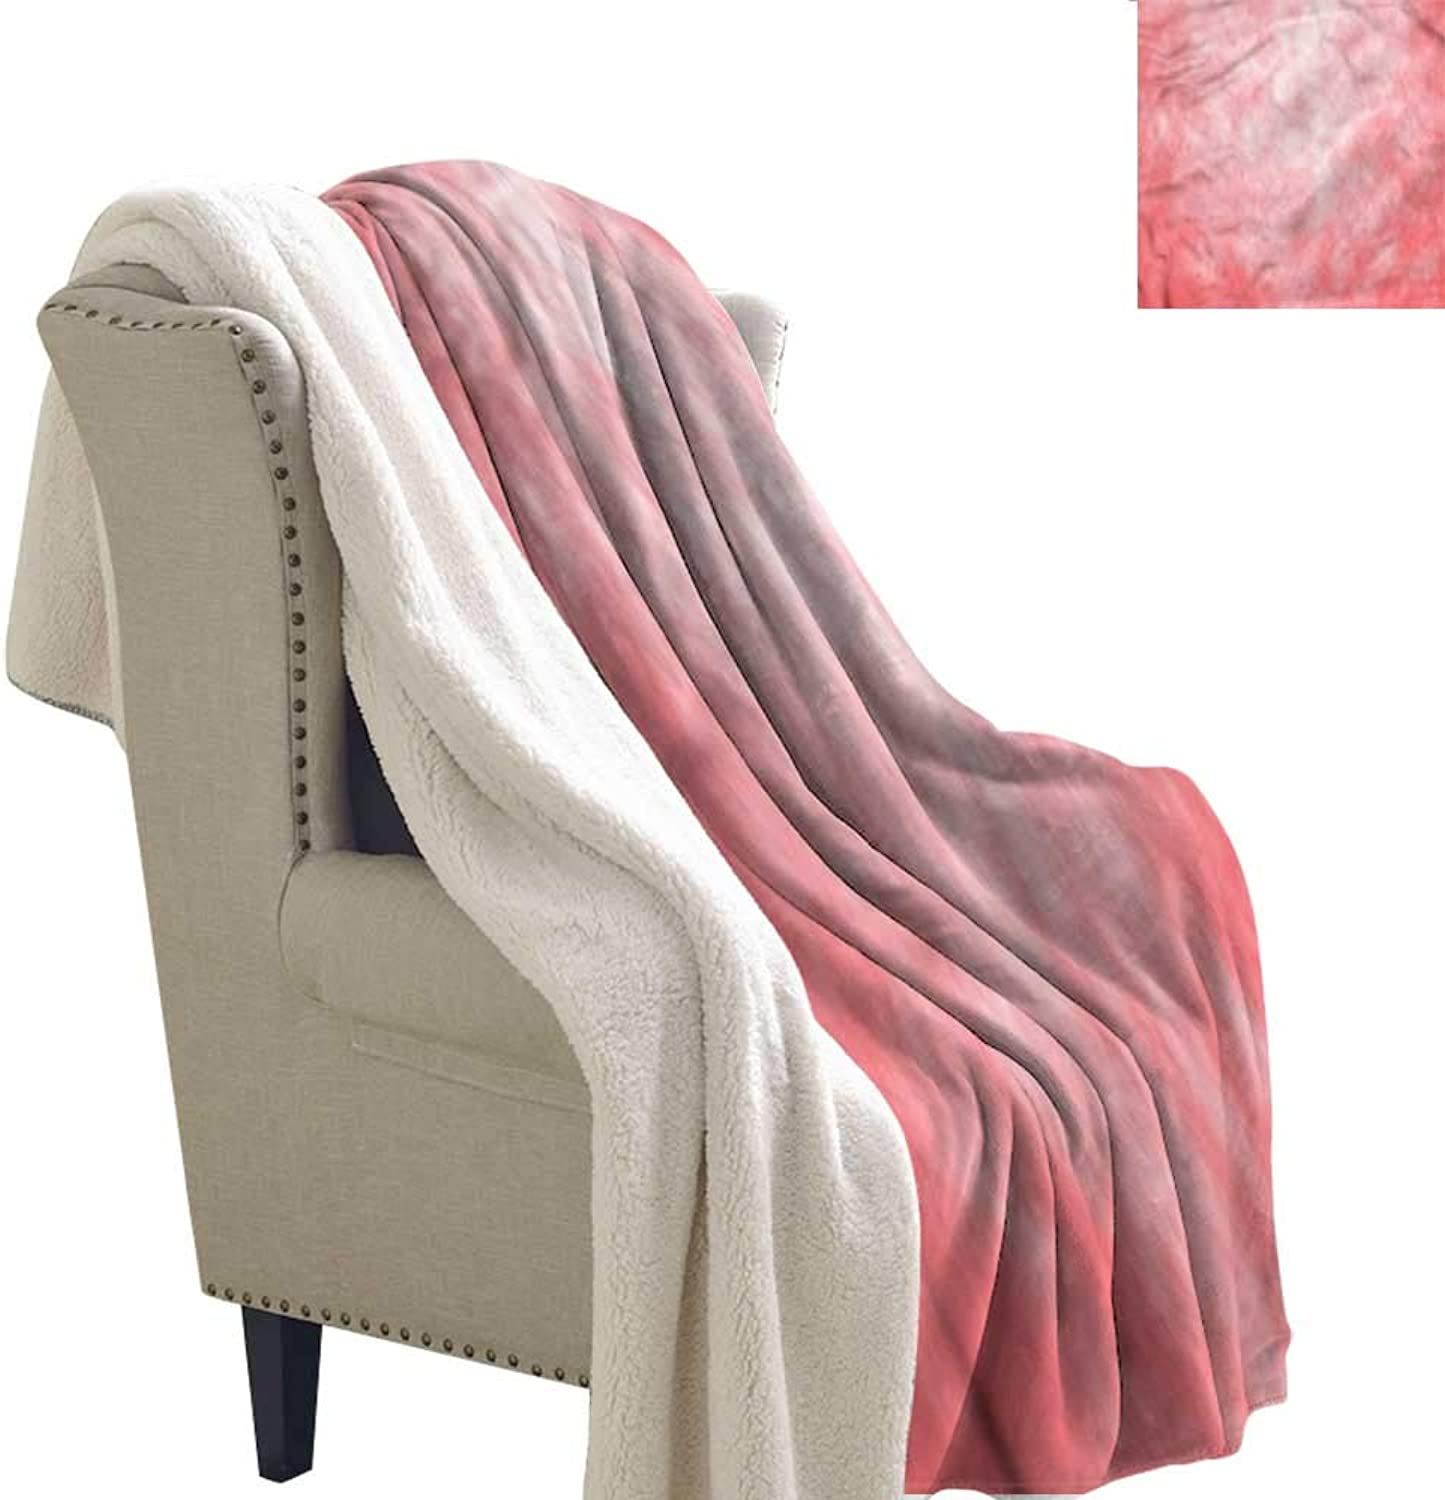 AndyTours Winter Quilt Coral Pale Spring Watercolor Autumn and Winter Thick Blanket W59 x L31